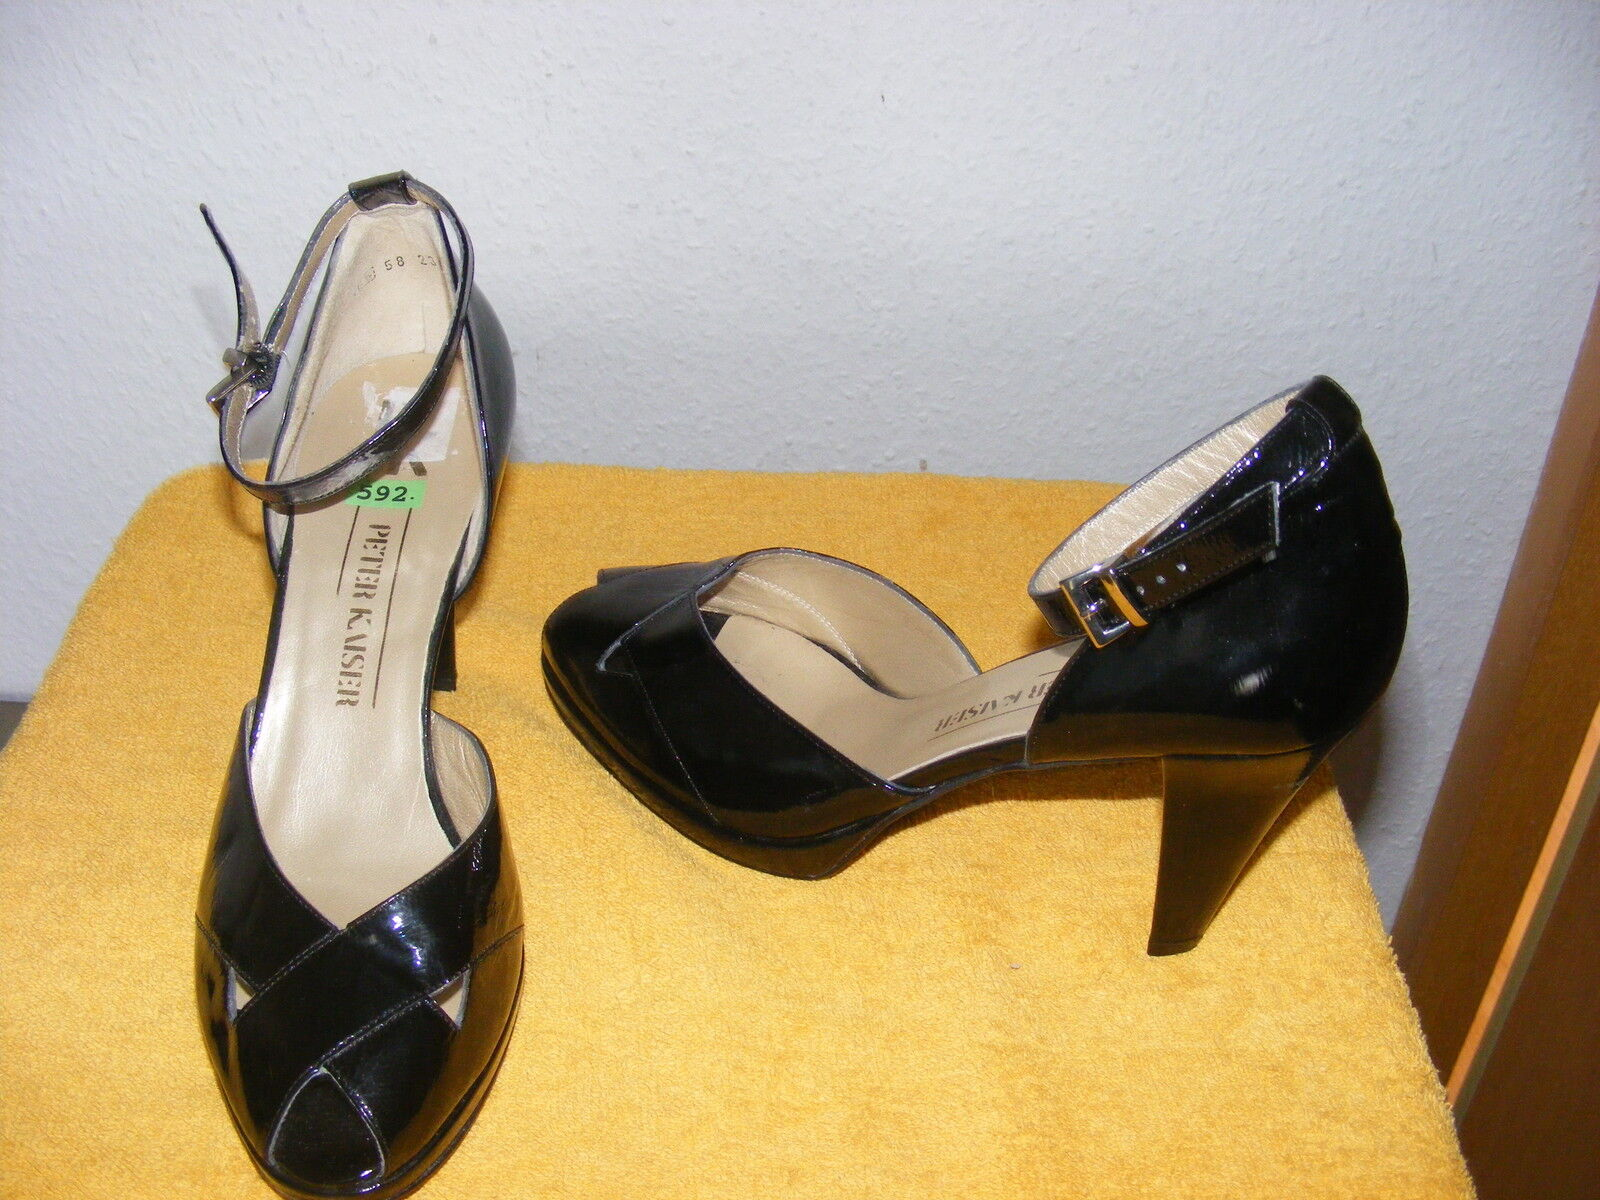 PETER KAISER Gr.40 NEU Pumps, High Heels, schwarz, Absatz 8 cm Stiletto elegant